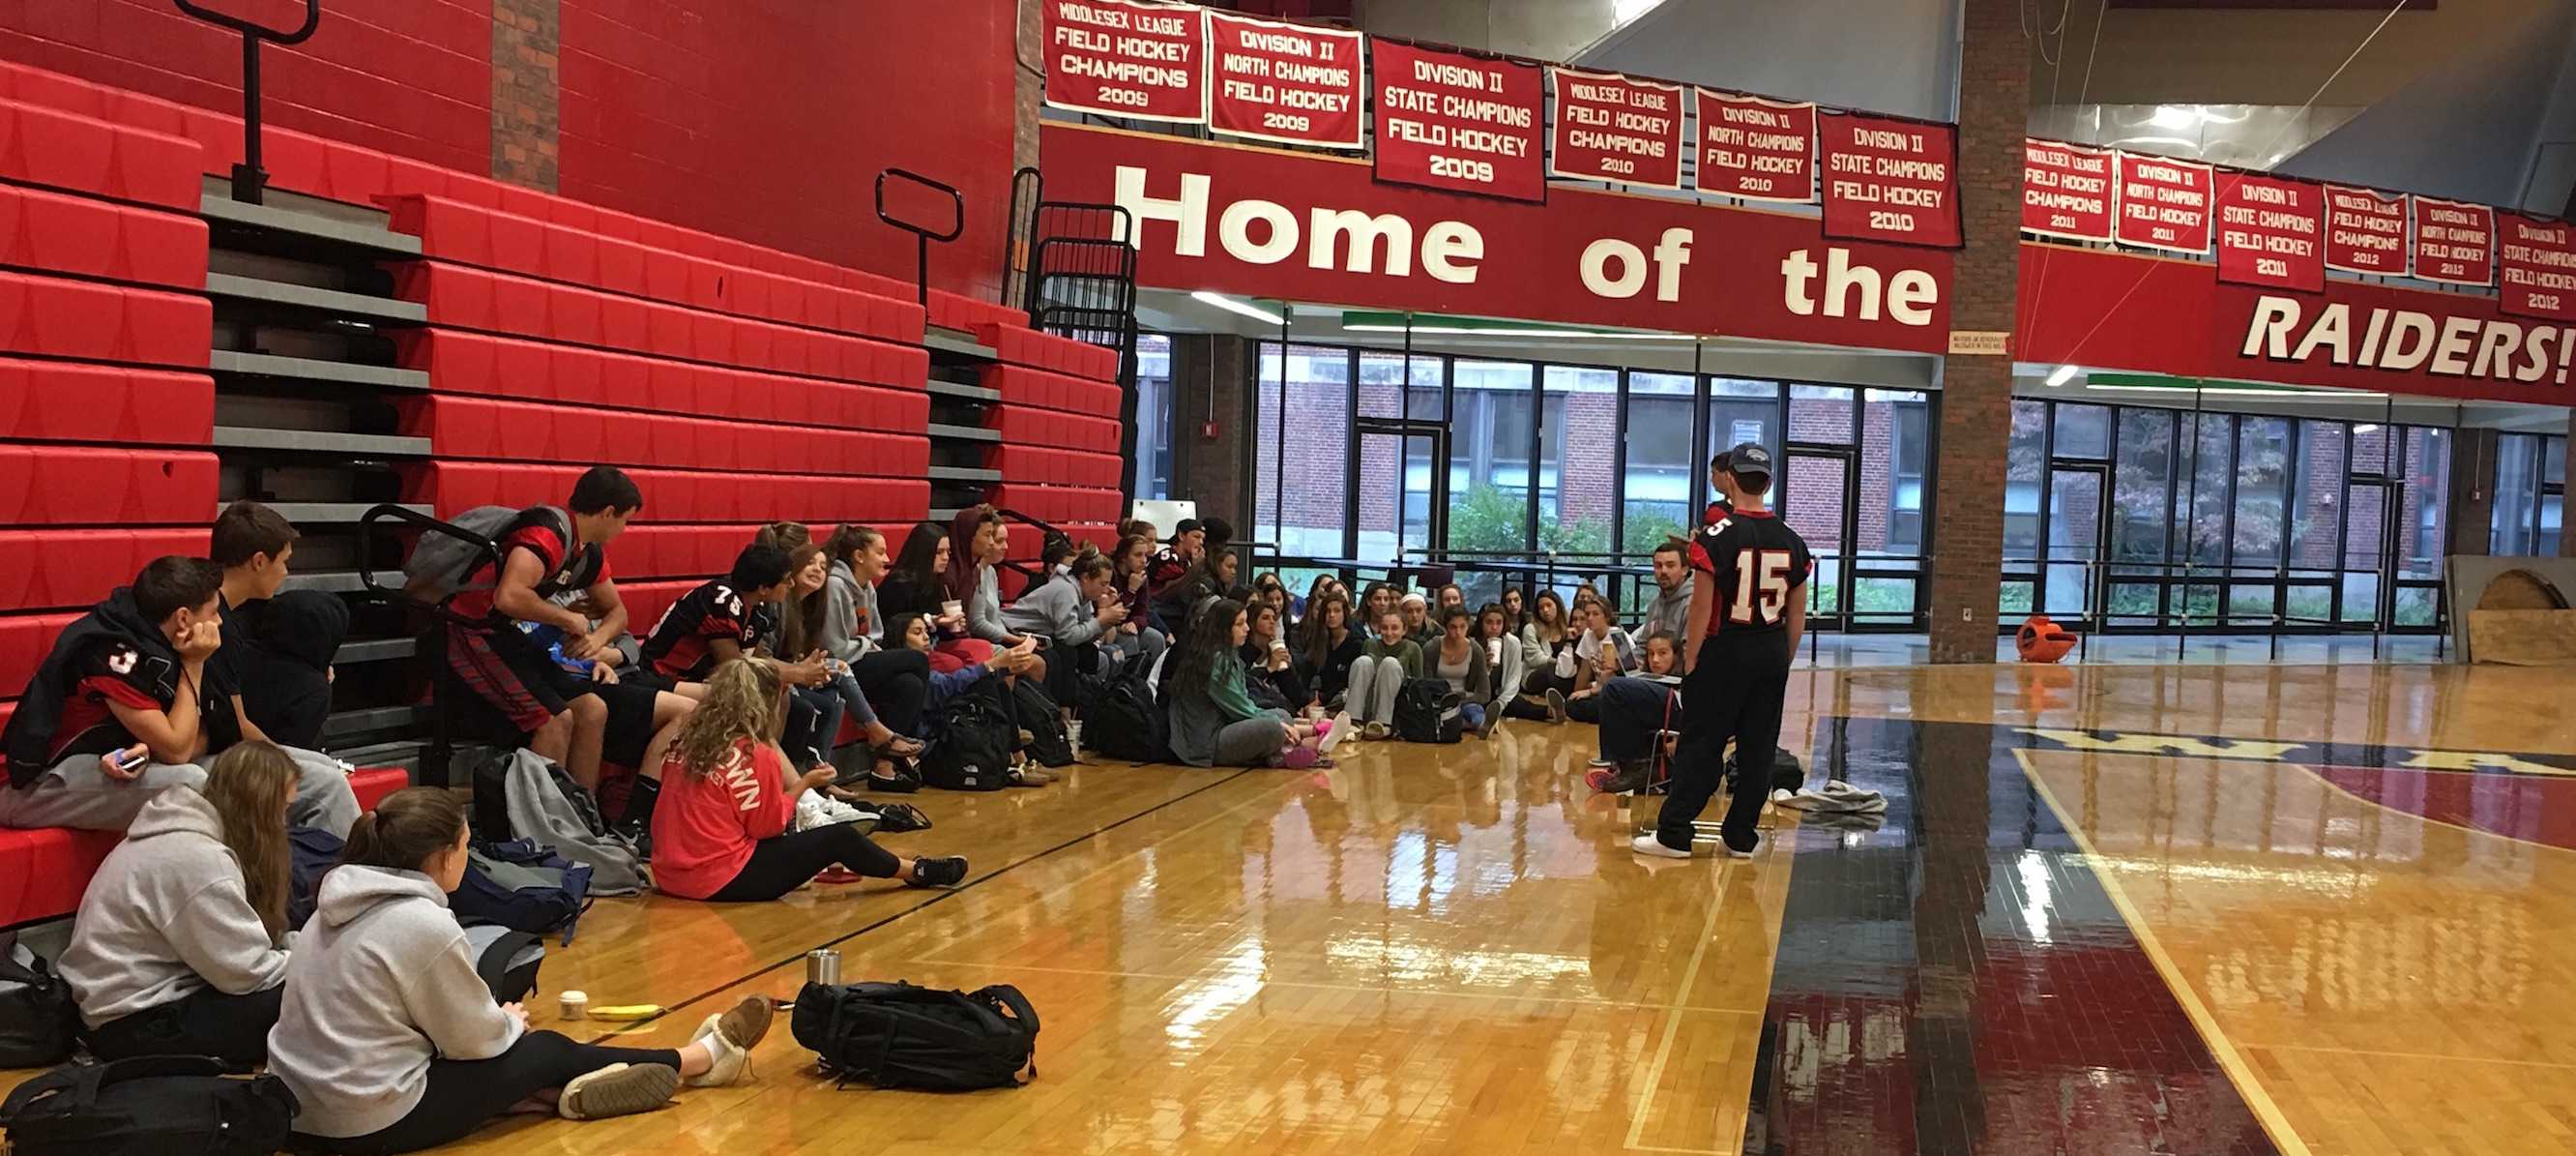 With more than 100 students involved, the Pride Committee sometimes needs to hold its meeting in the Watertown High gym so it can fit everyone.